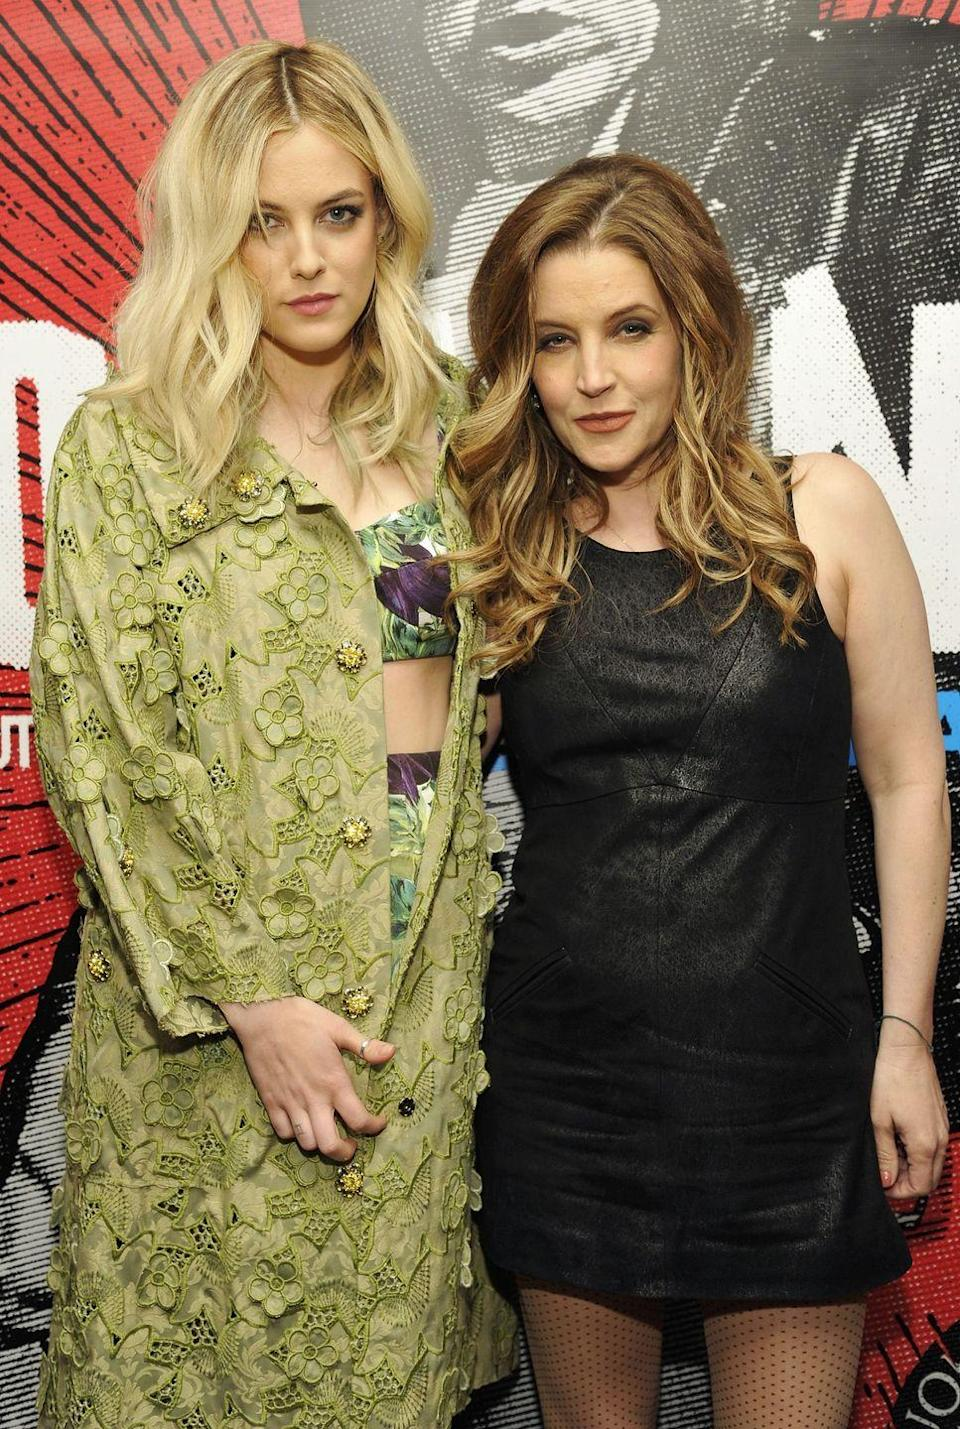 "<p><strong>Famous parent(s)</strong>: singer Lisa Marie Presley <br><strong>What it was like</strong>: ""People always ask, 'How crazy is it that your grandpa was Elvis and your stepdad was Michael Jackson?' I make them happy and say, 'Yeah, it's soooo crazy!'"" she's <a href=""http://us.hellomagazine.com/celebrities/12016021911850/riley-keough-on-being-related-to-Elvis-Presley-Michael-Jackson/"" rel=""nofollow noopener"" target=""_blank"" data-ylk=""slk:said"" class=""link rapid-noclick-resp"">said</a>. ""The reality is I know as much about my grandpa as you'd know about a grandpa you never met. I remember this Disney watch that Michael gave me. I think I sold that for five (dollars).""</p>"